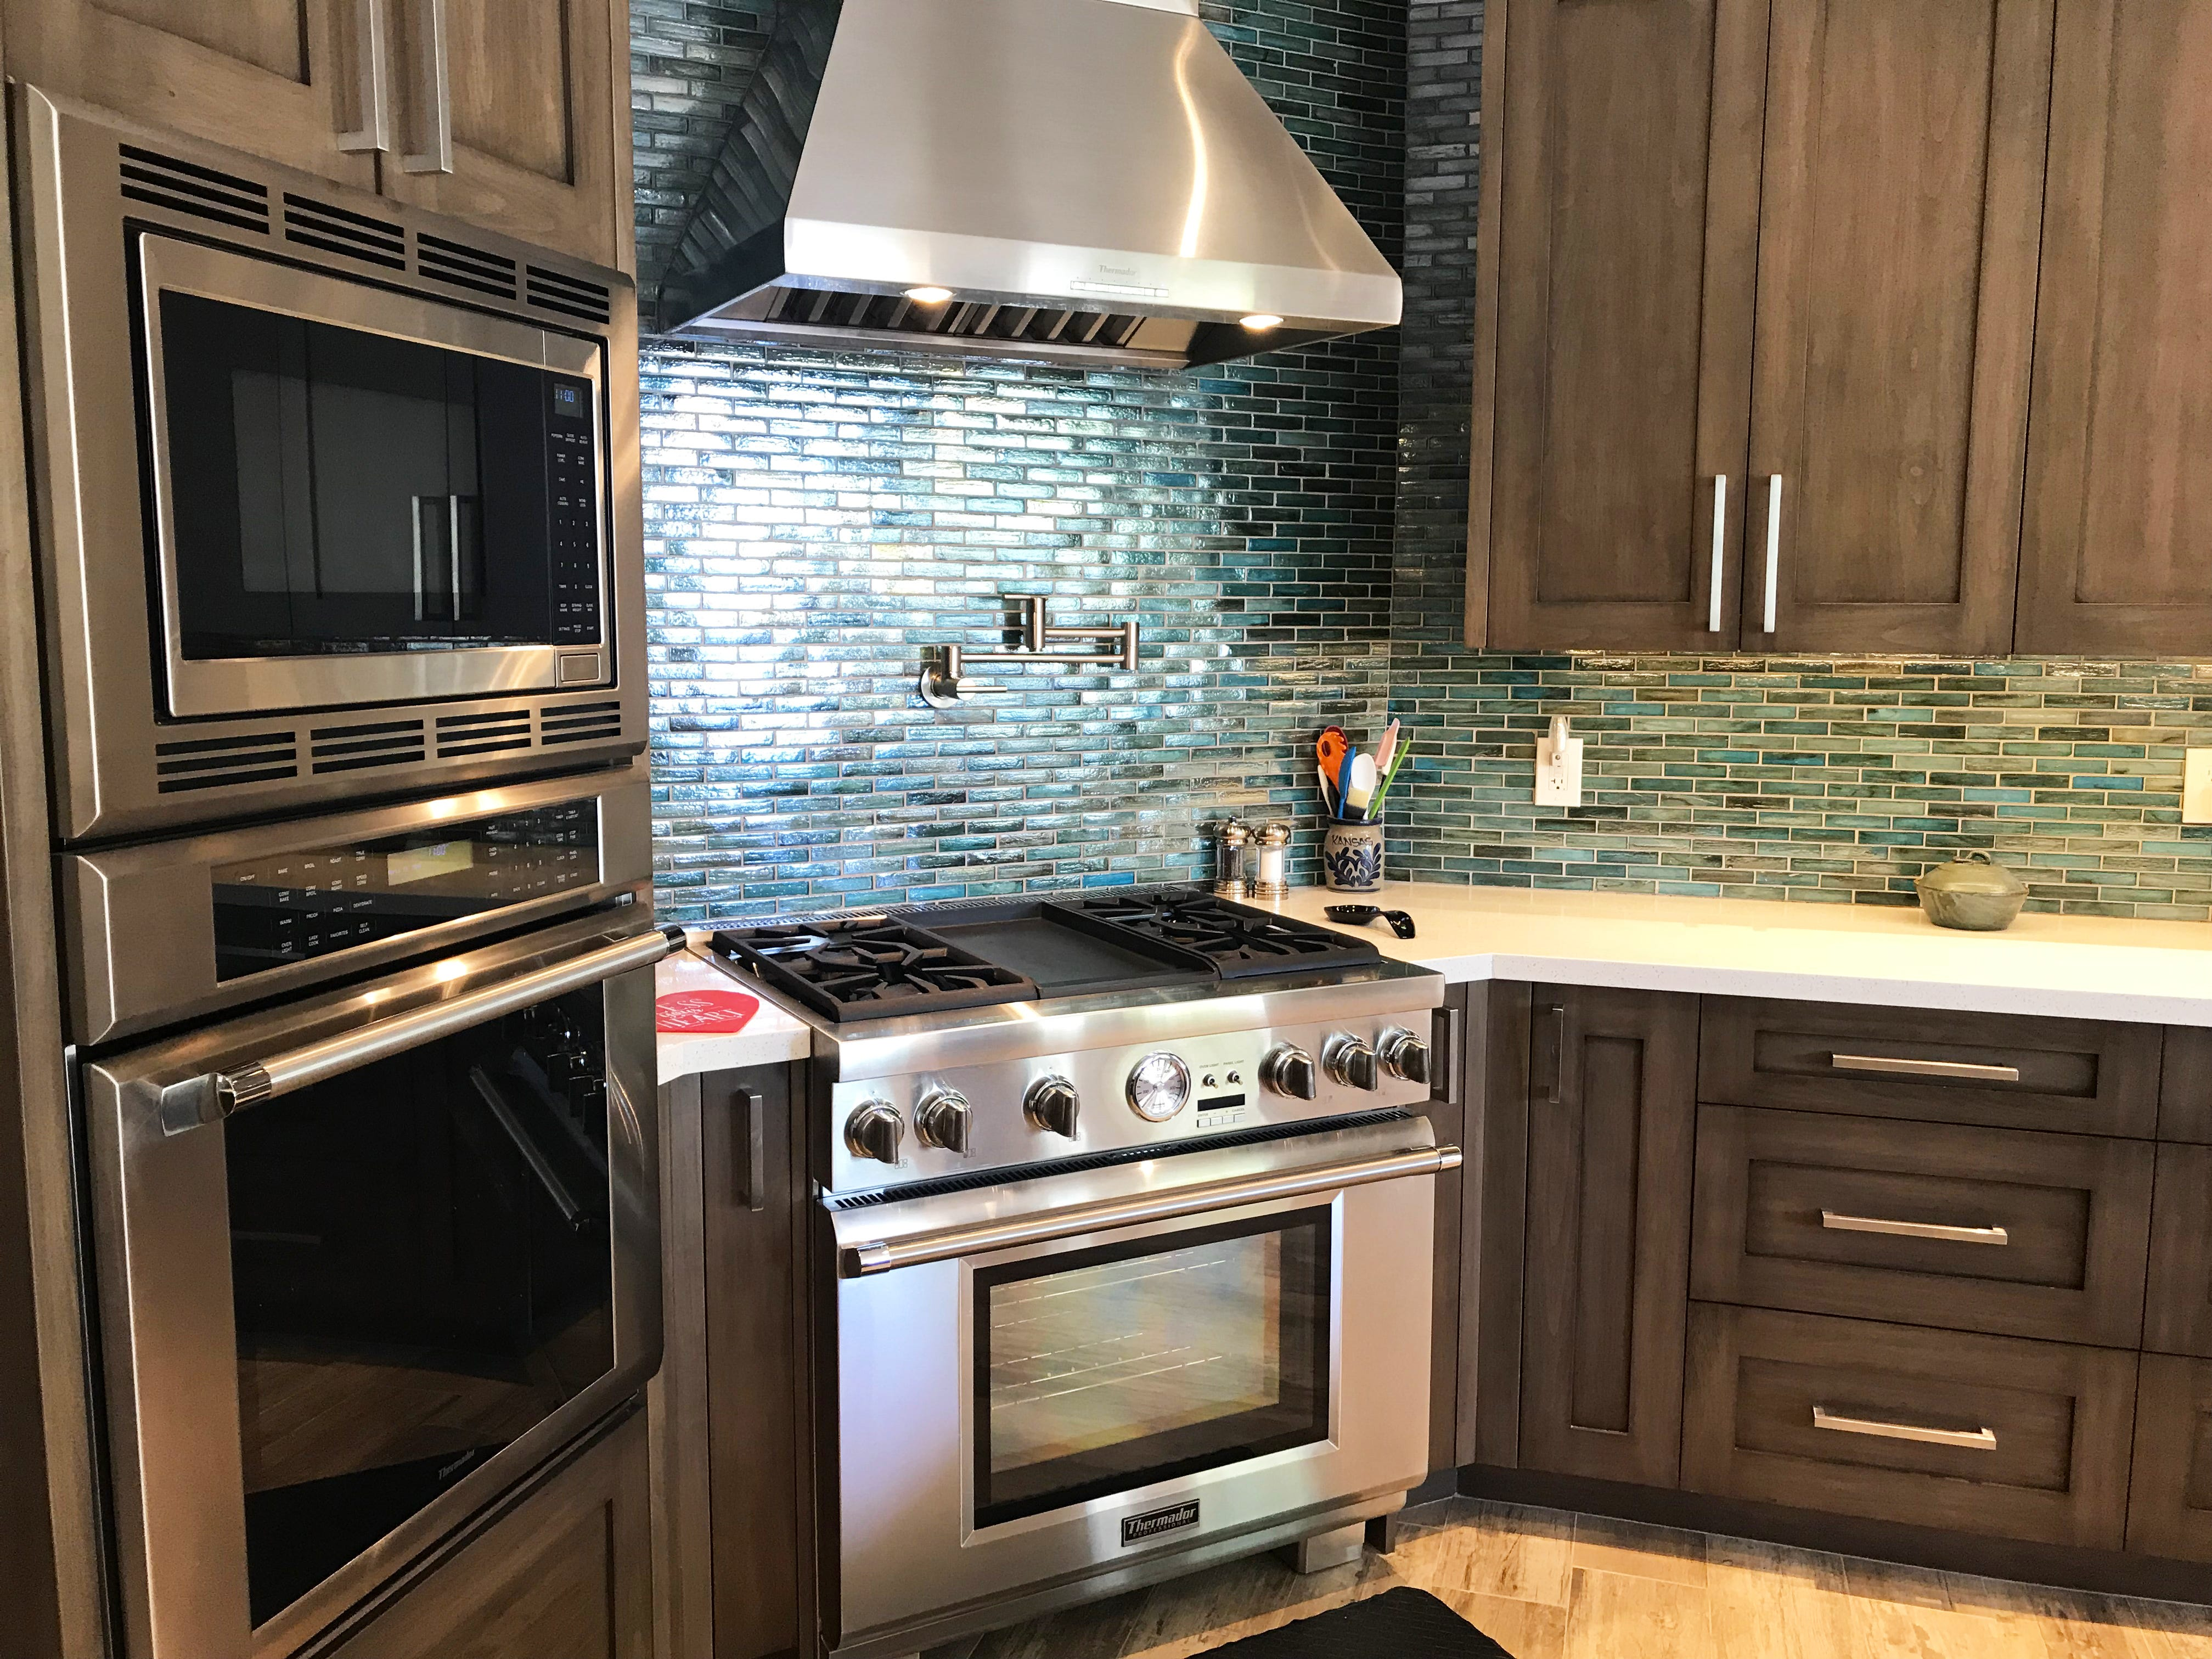 Custom made stained alder wood cabinets and iridescent blue backsplash tiles cost $29,000 and $2,000 respectively. Dave McNay installed the tiles himself.